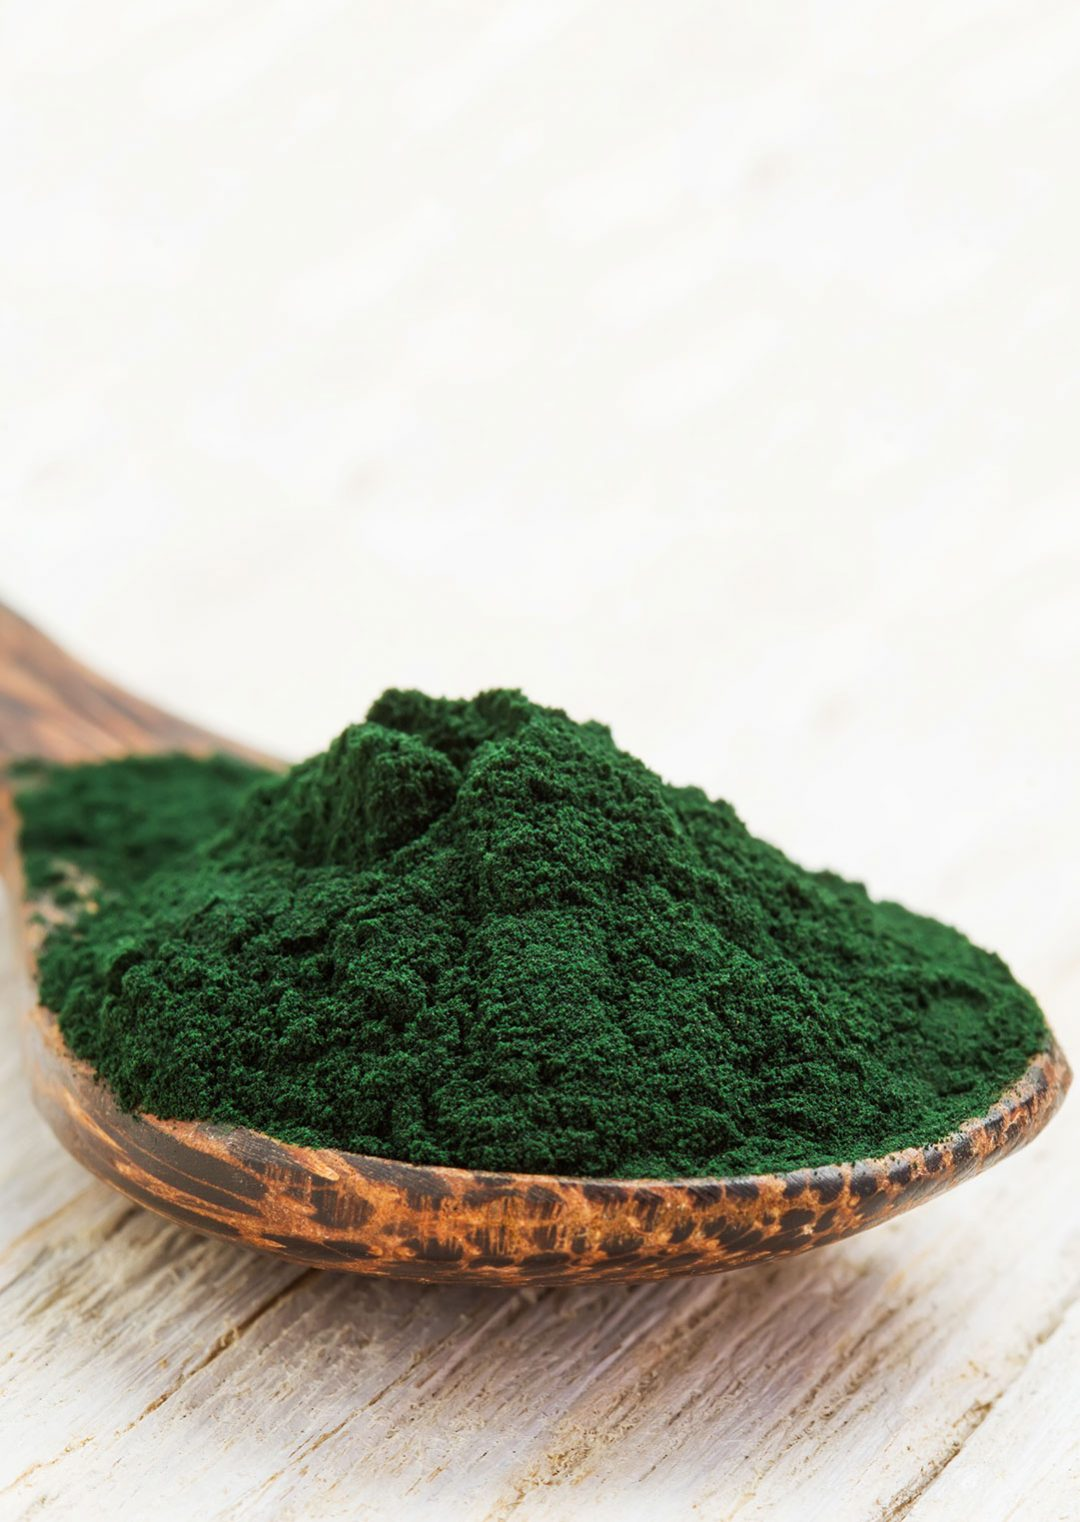 Is Spirulina The Most Nutrient-Dense Food On Earth? | It's one nutrient-dense bombshell with superfood status. What are the benefits of spirulina? Is it the most nutrient-dense food on the planet? Keep reading and decide for yourself! | WildernessFamilyNaturals.com